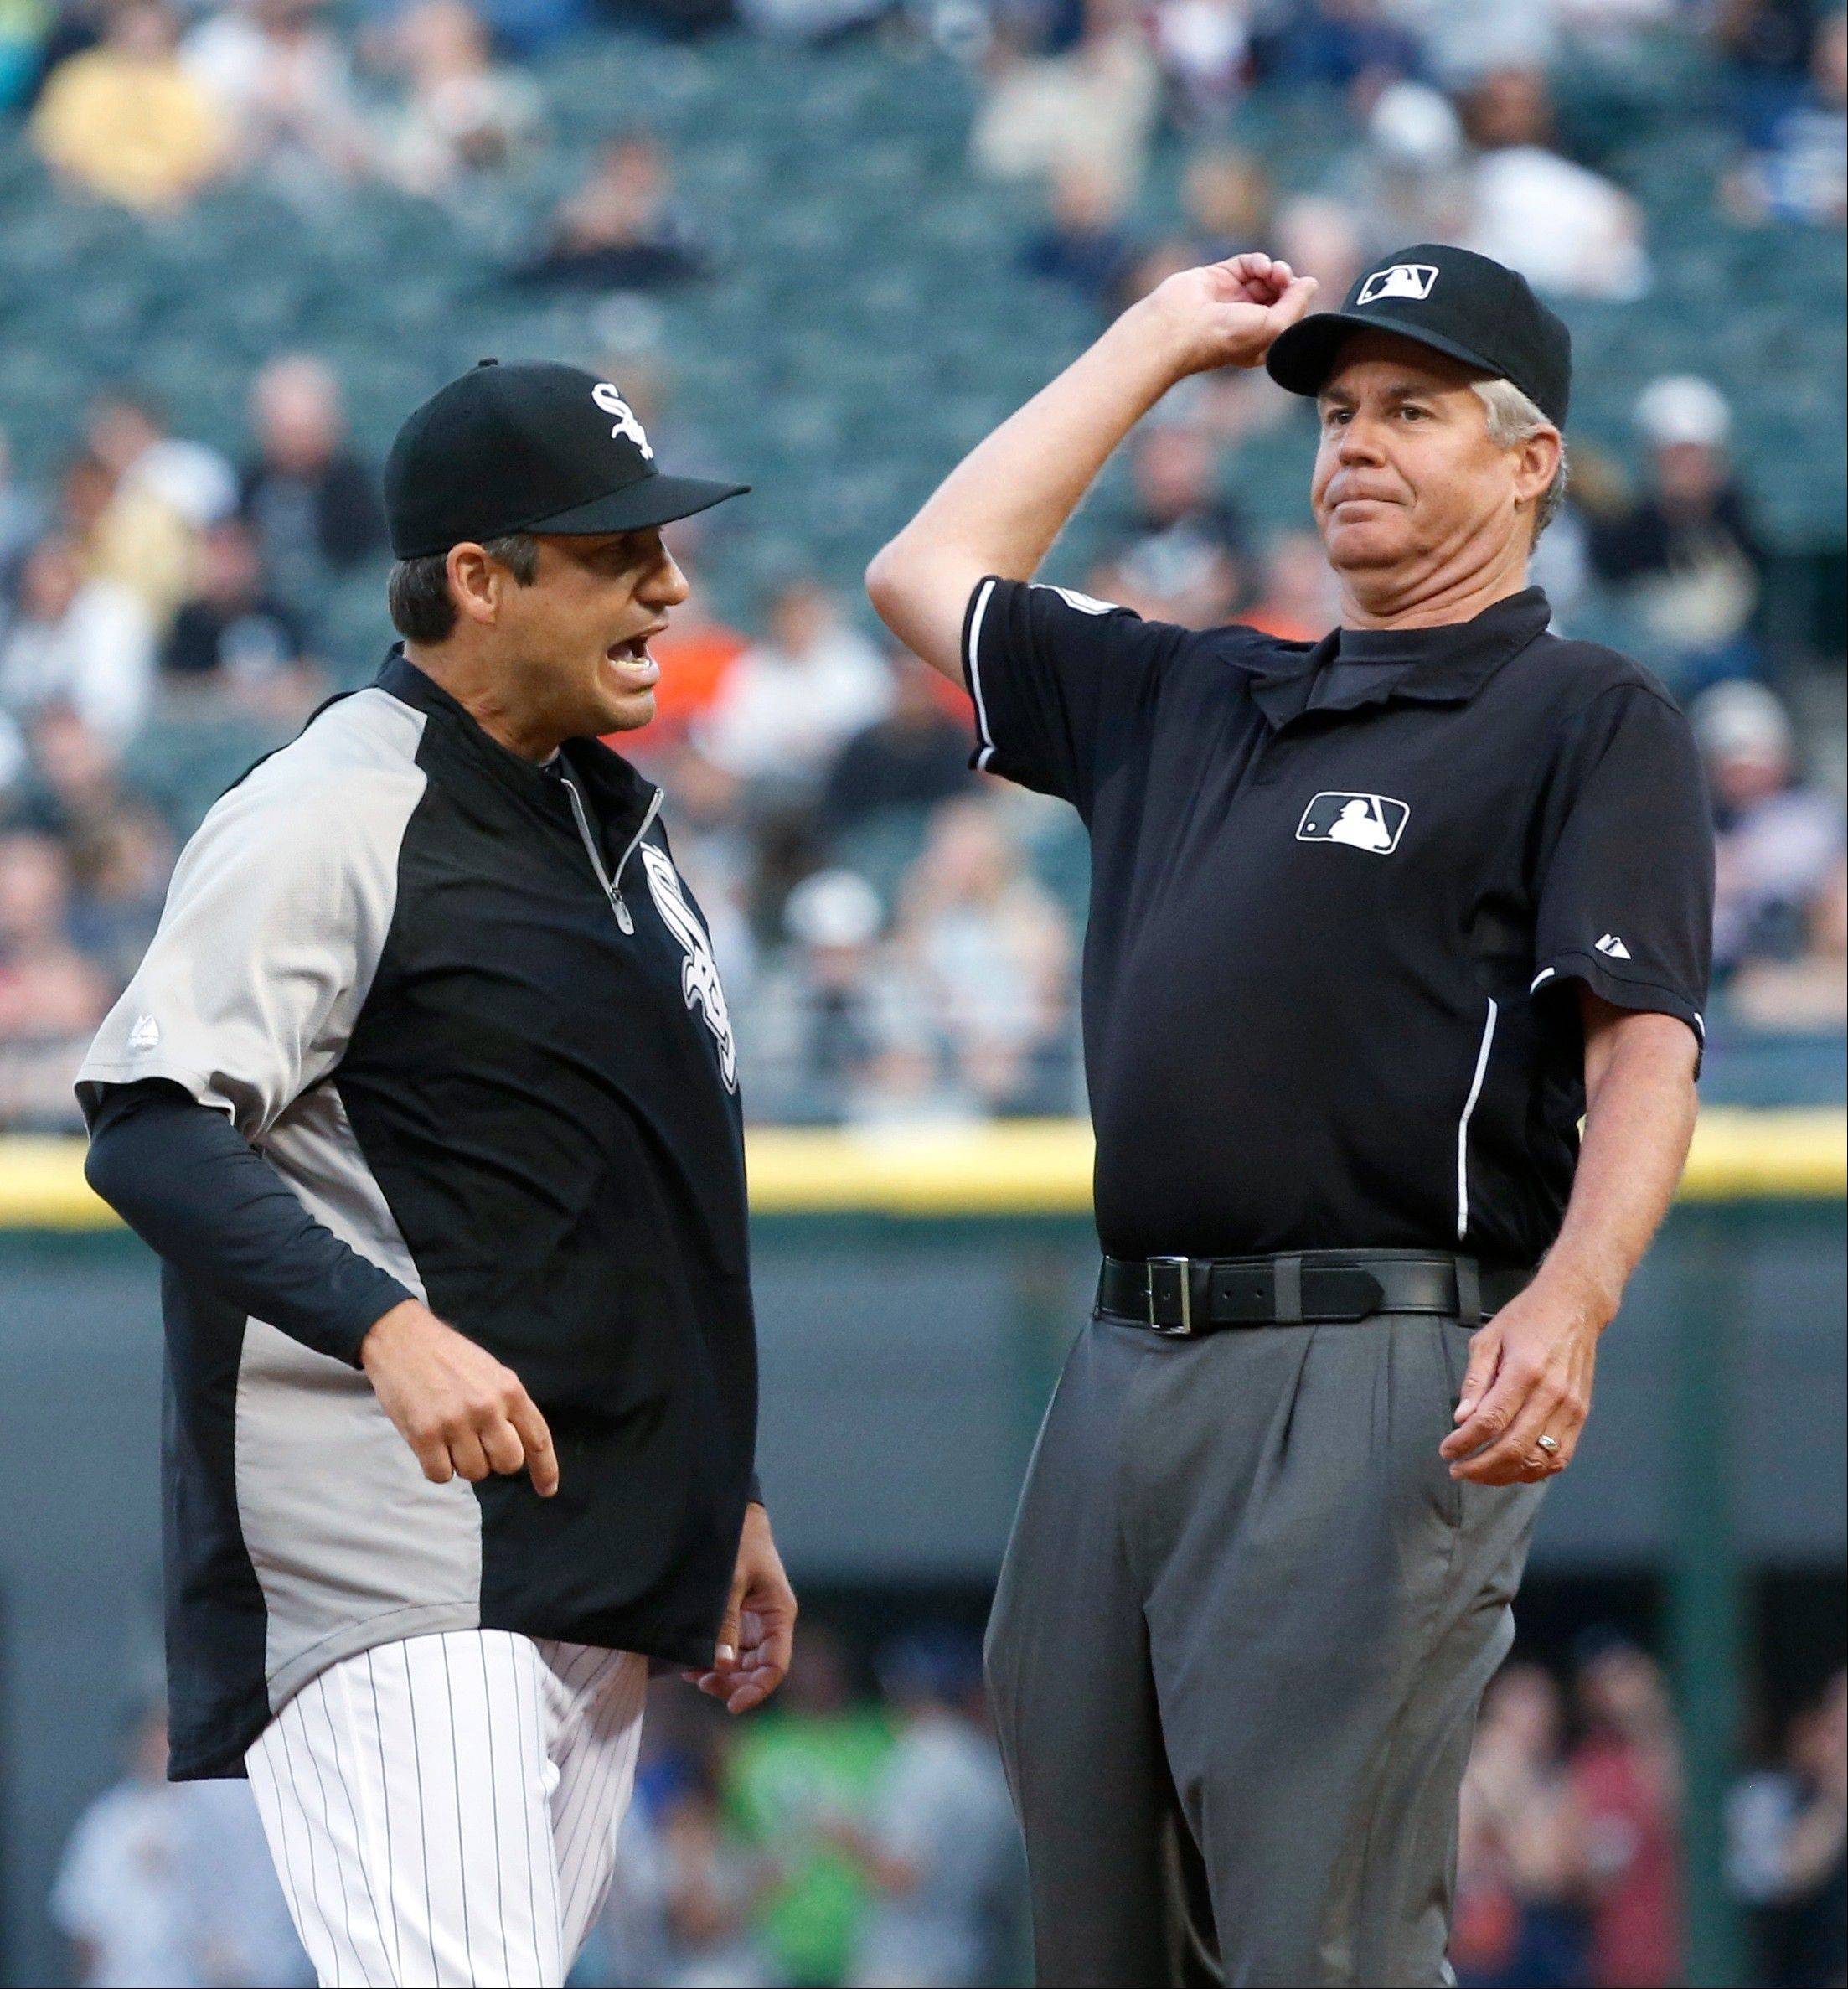 First base umpire Gary Darling, right, throws out Chicago White Sox manager Robin Ventura as Ventura argues Darling's call that first baseman Adam Dunn interfered with Detroit Tigers' Torii Hunter getting back to first on a rundown during the first inning of a baseball game Tuesday, July 23, 2013, in Chicago.